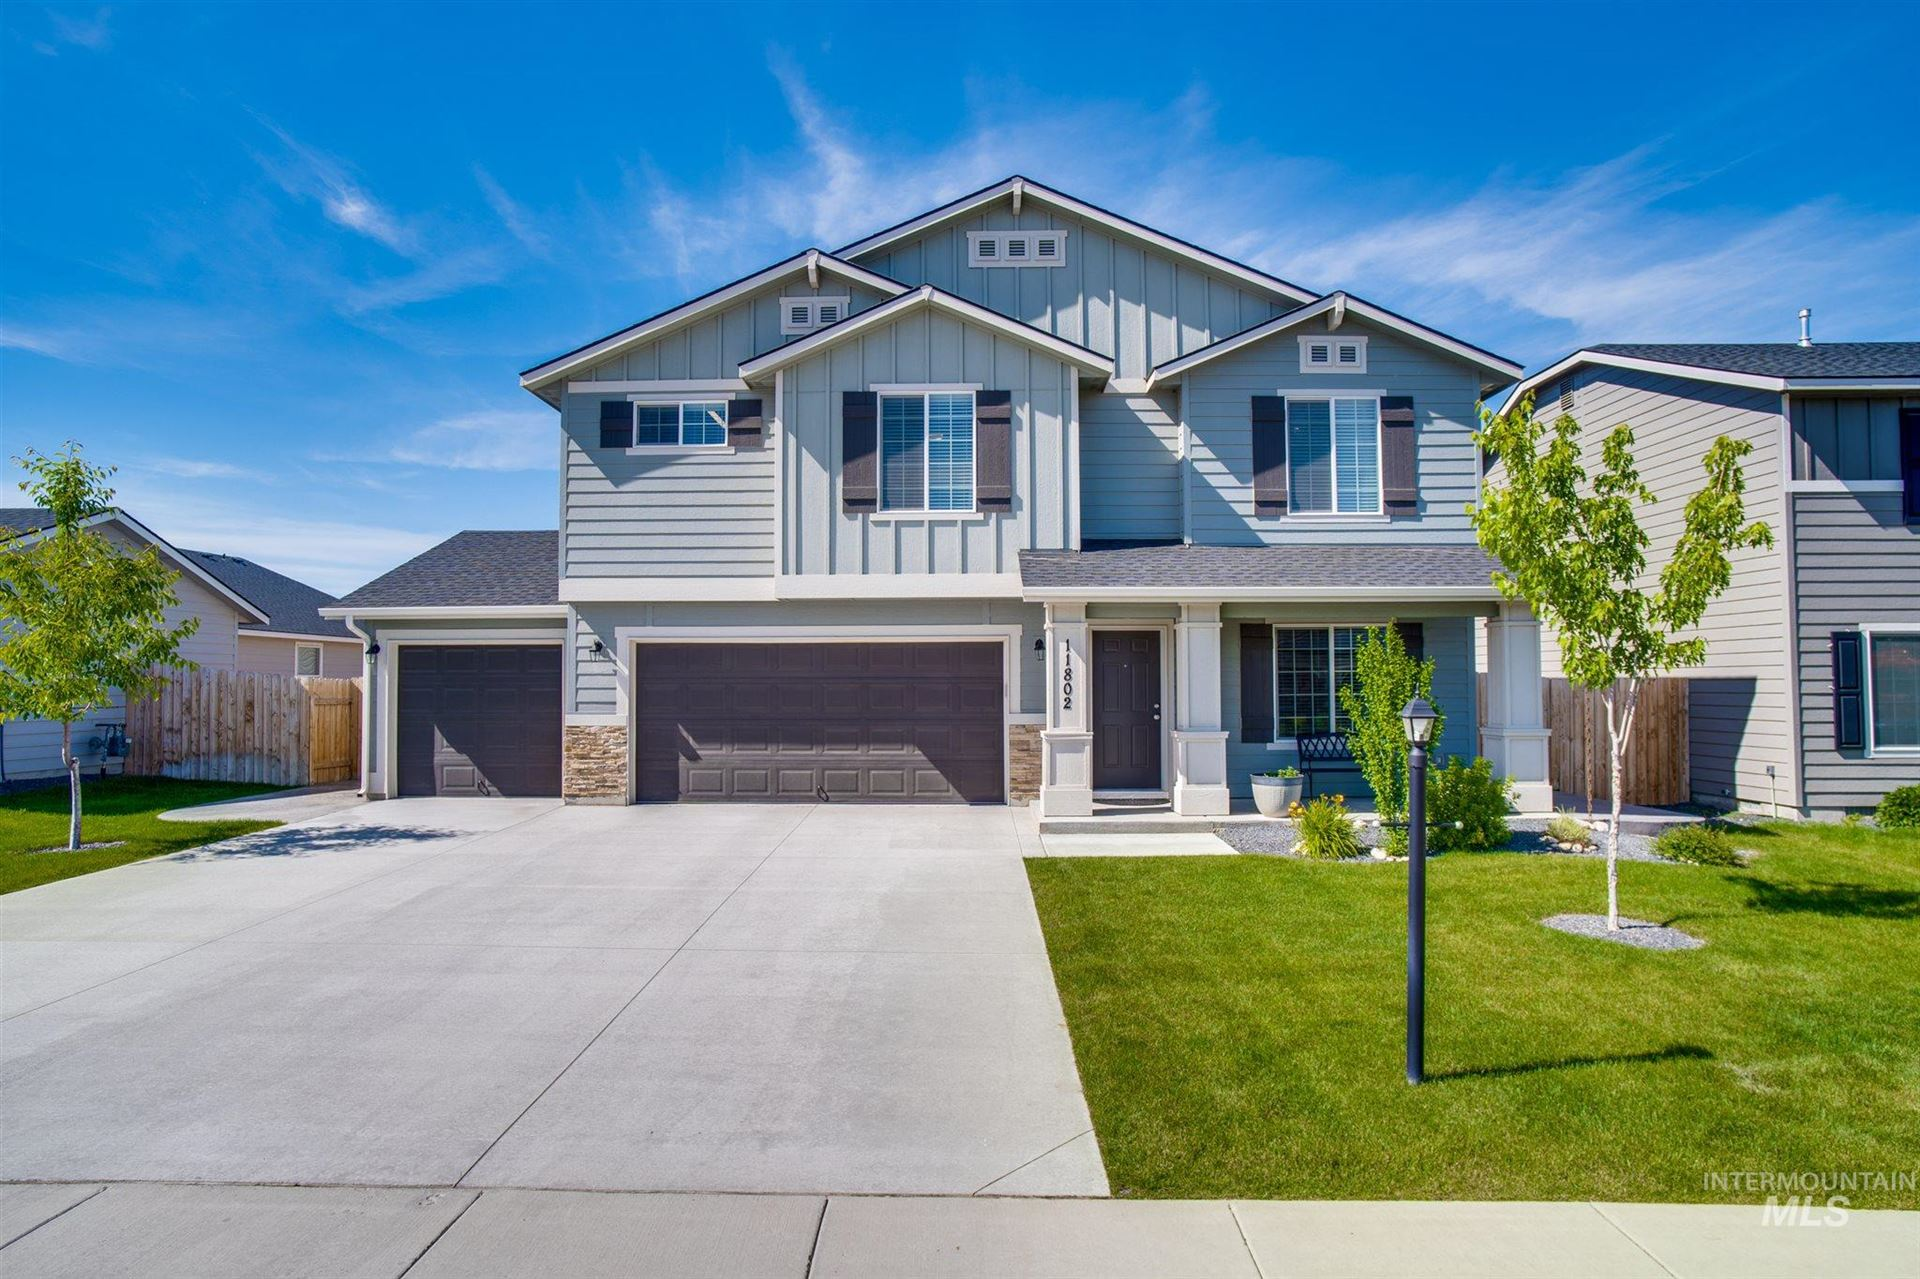 Photo of 11802 Wilmington St, Caldwell, ID 83605 (MLS # 98768698)